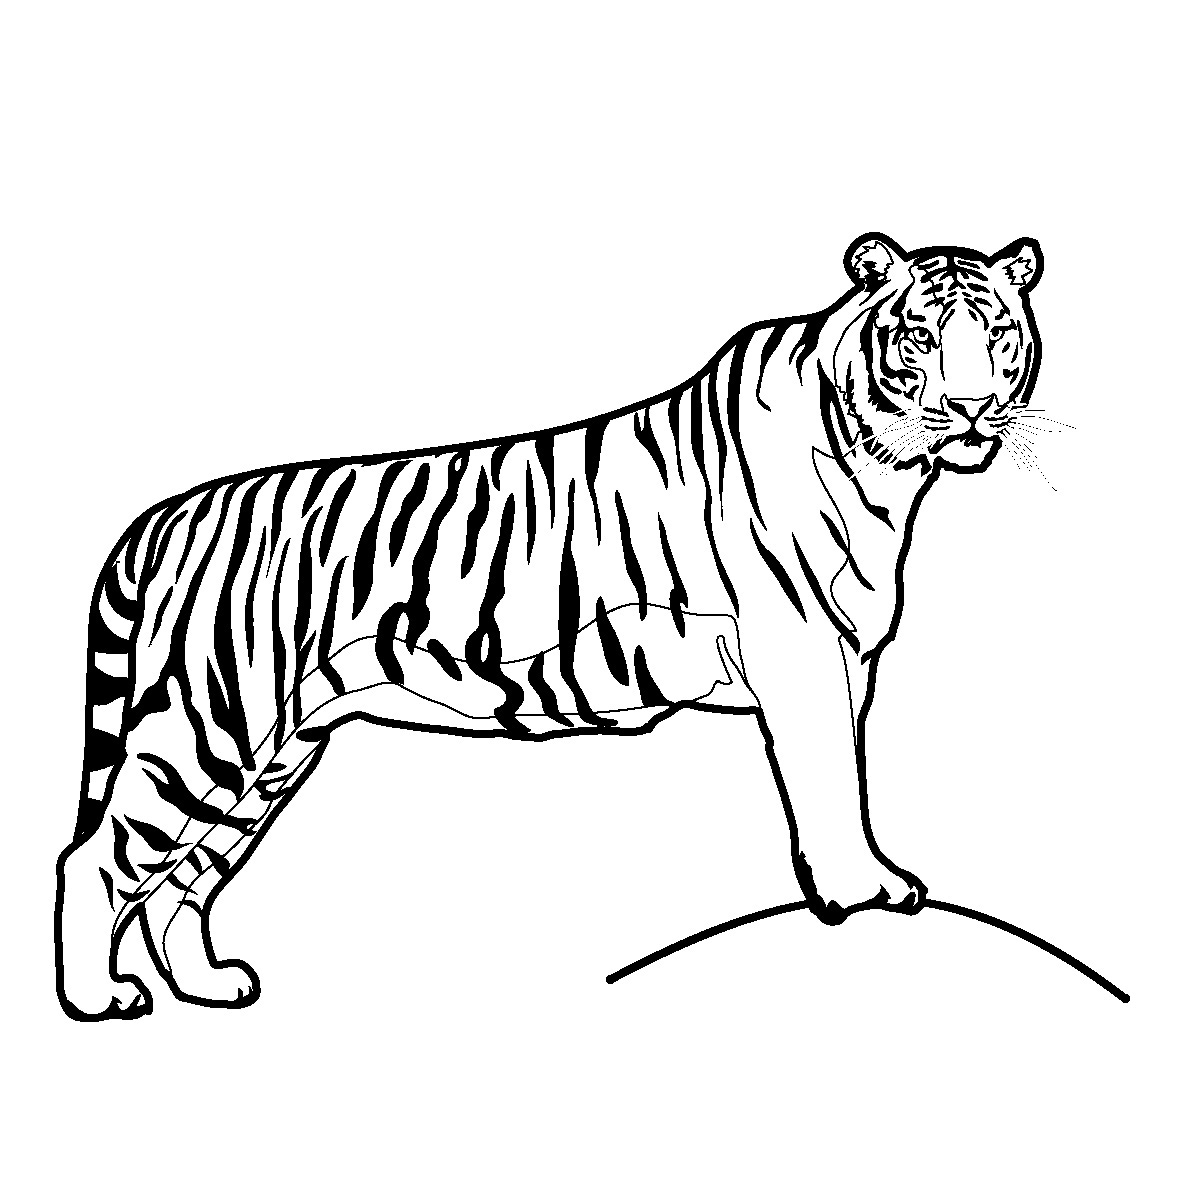 tiger coloring page tiger coloring page free printable coloring pages page tiger coloring